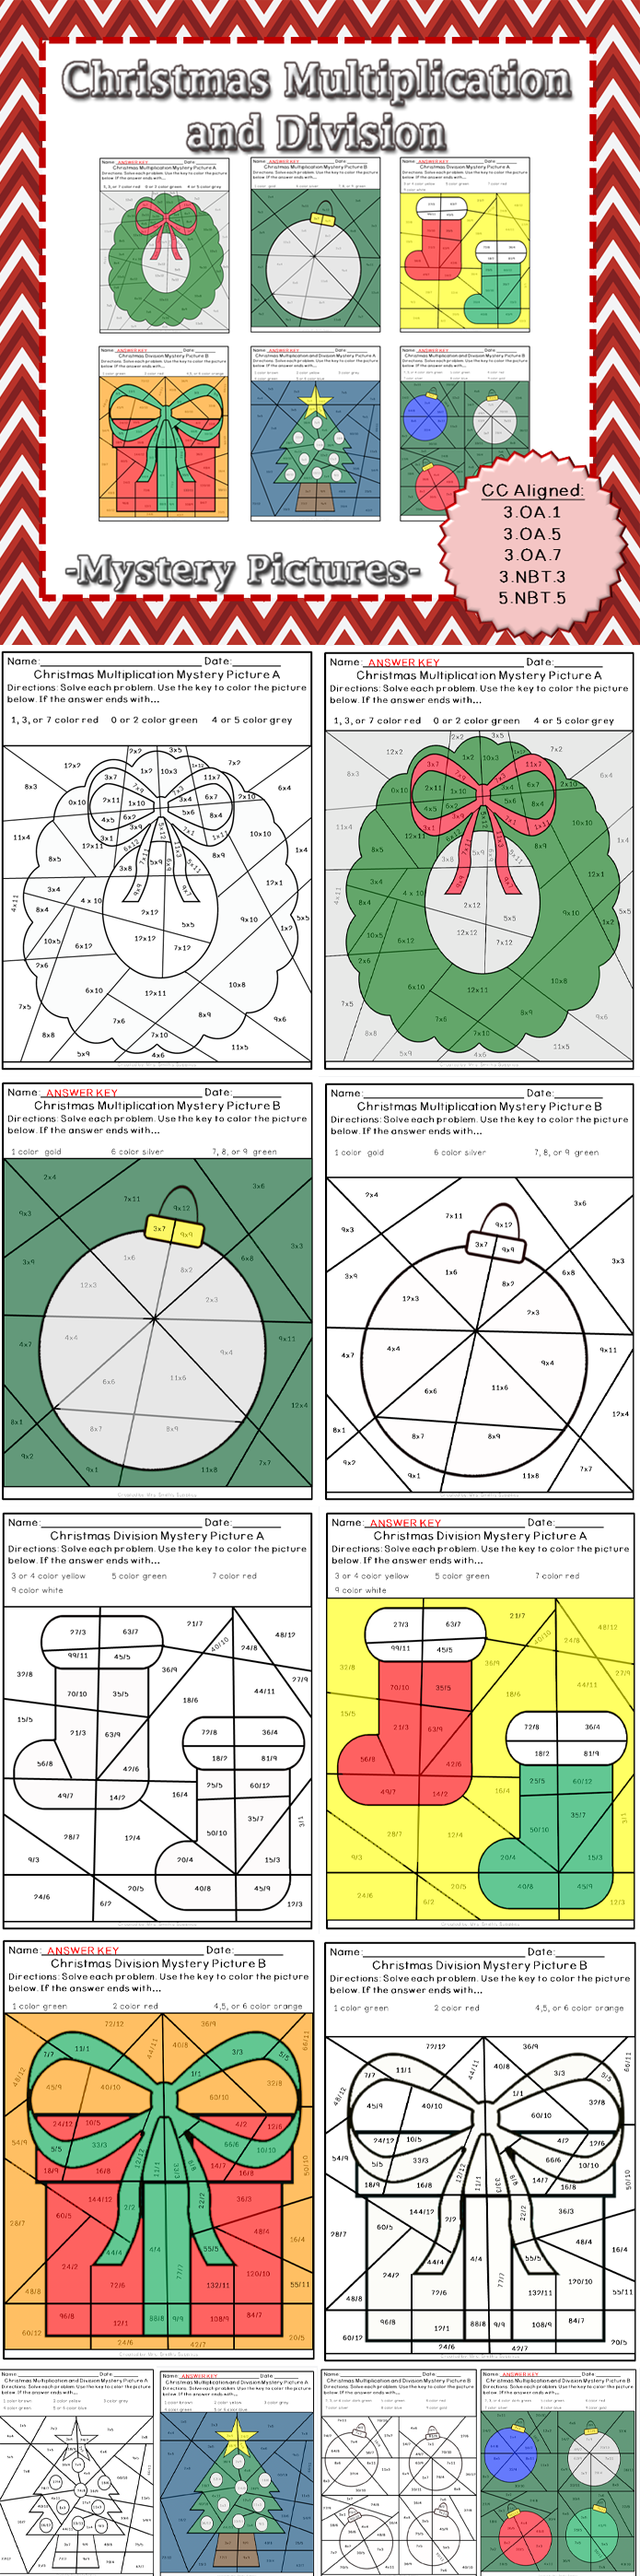 Christmas Multiplication and Division Mystery Pictures | Math fact ...